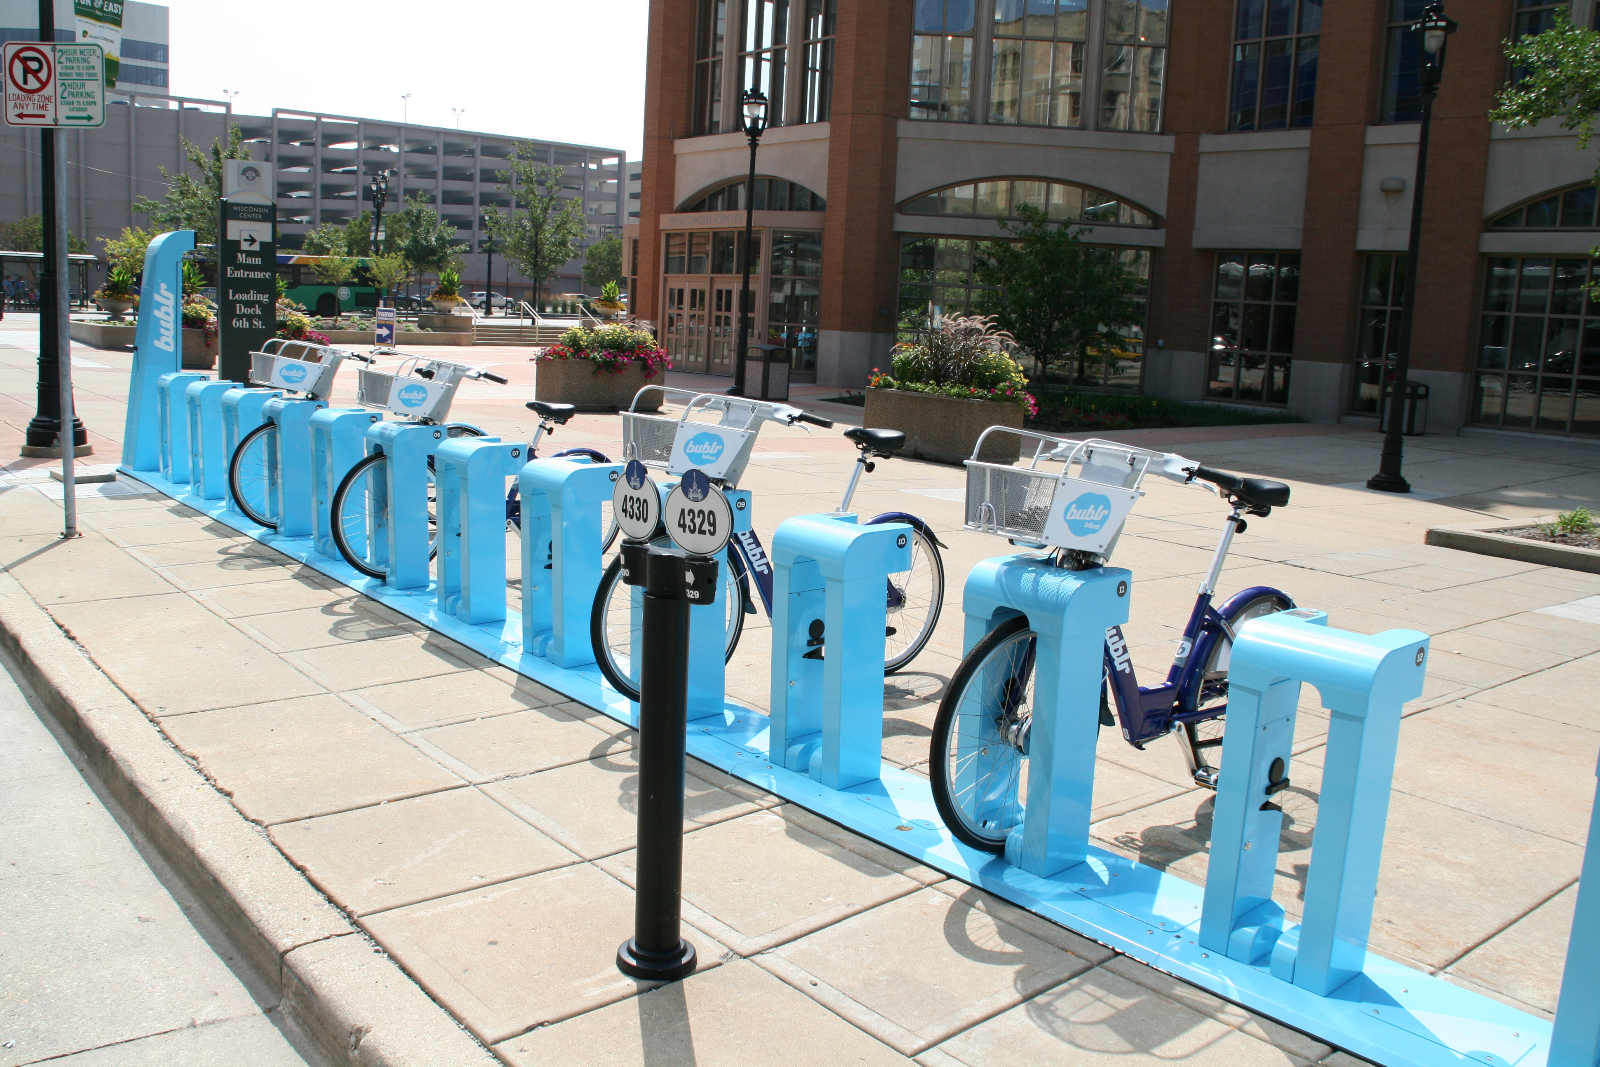 Bublr Bikes at the Wisconsin Center